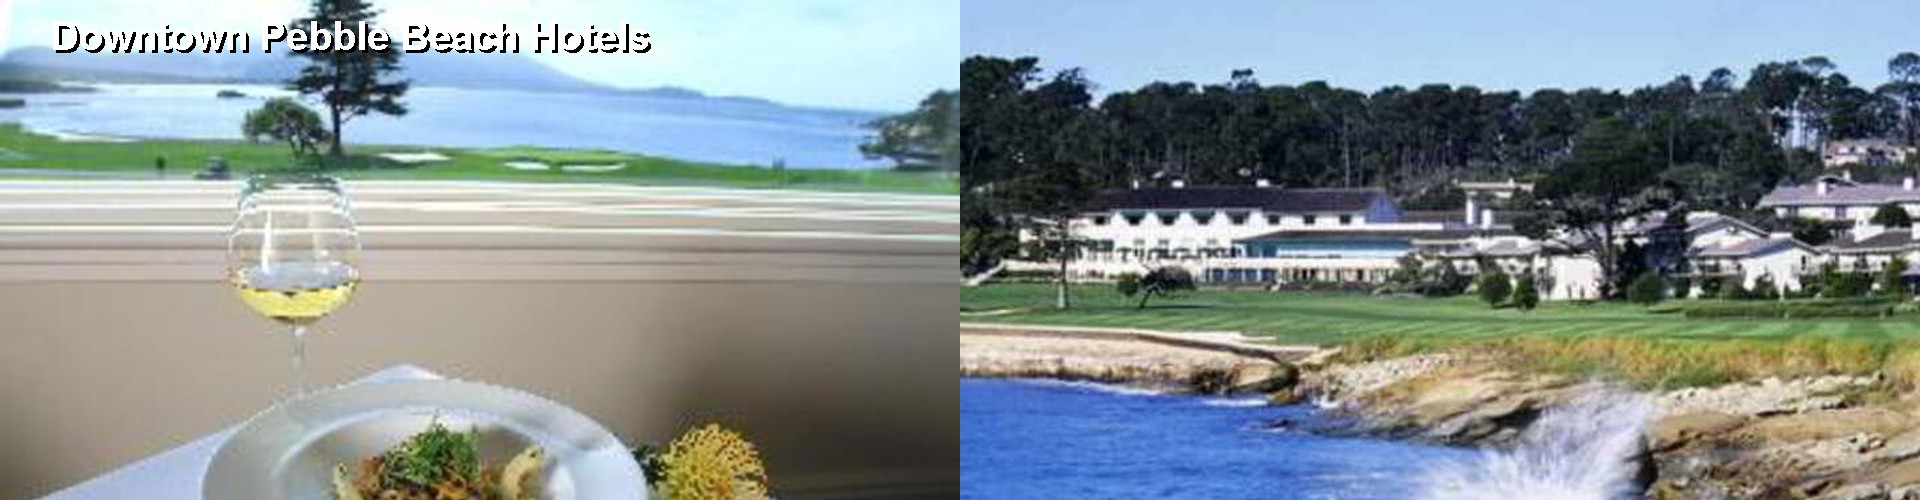 5 Best Hotels near Downtown Pebble Beach